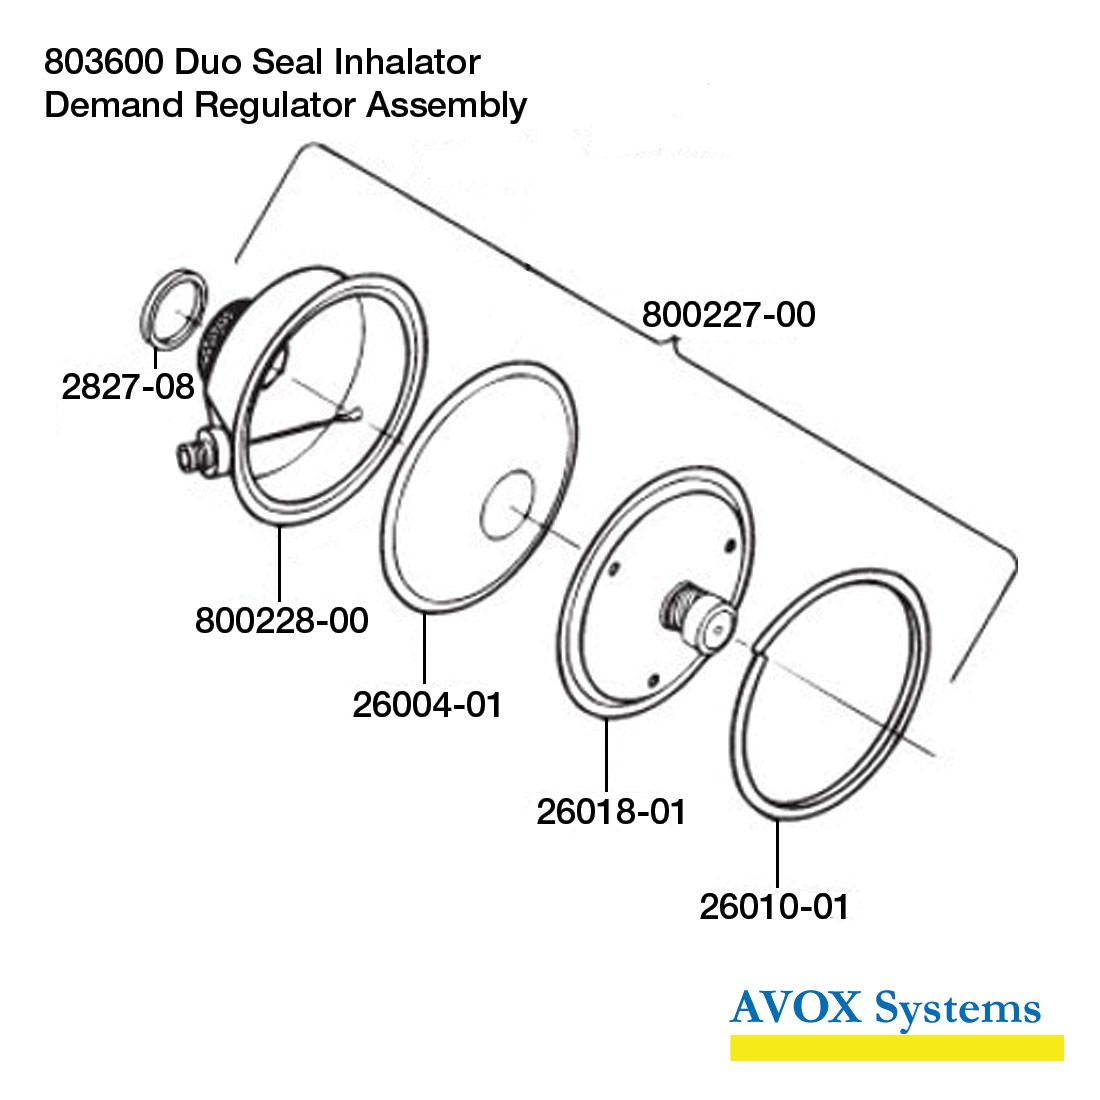 Avox 803600-04 Duo Seal Inhalator without First Stage Regulator Assembly with Microphone Assembly - Demand Regulator Assembly